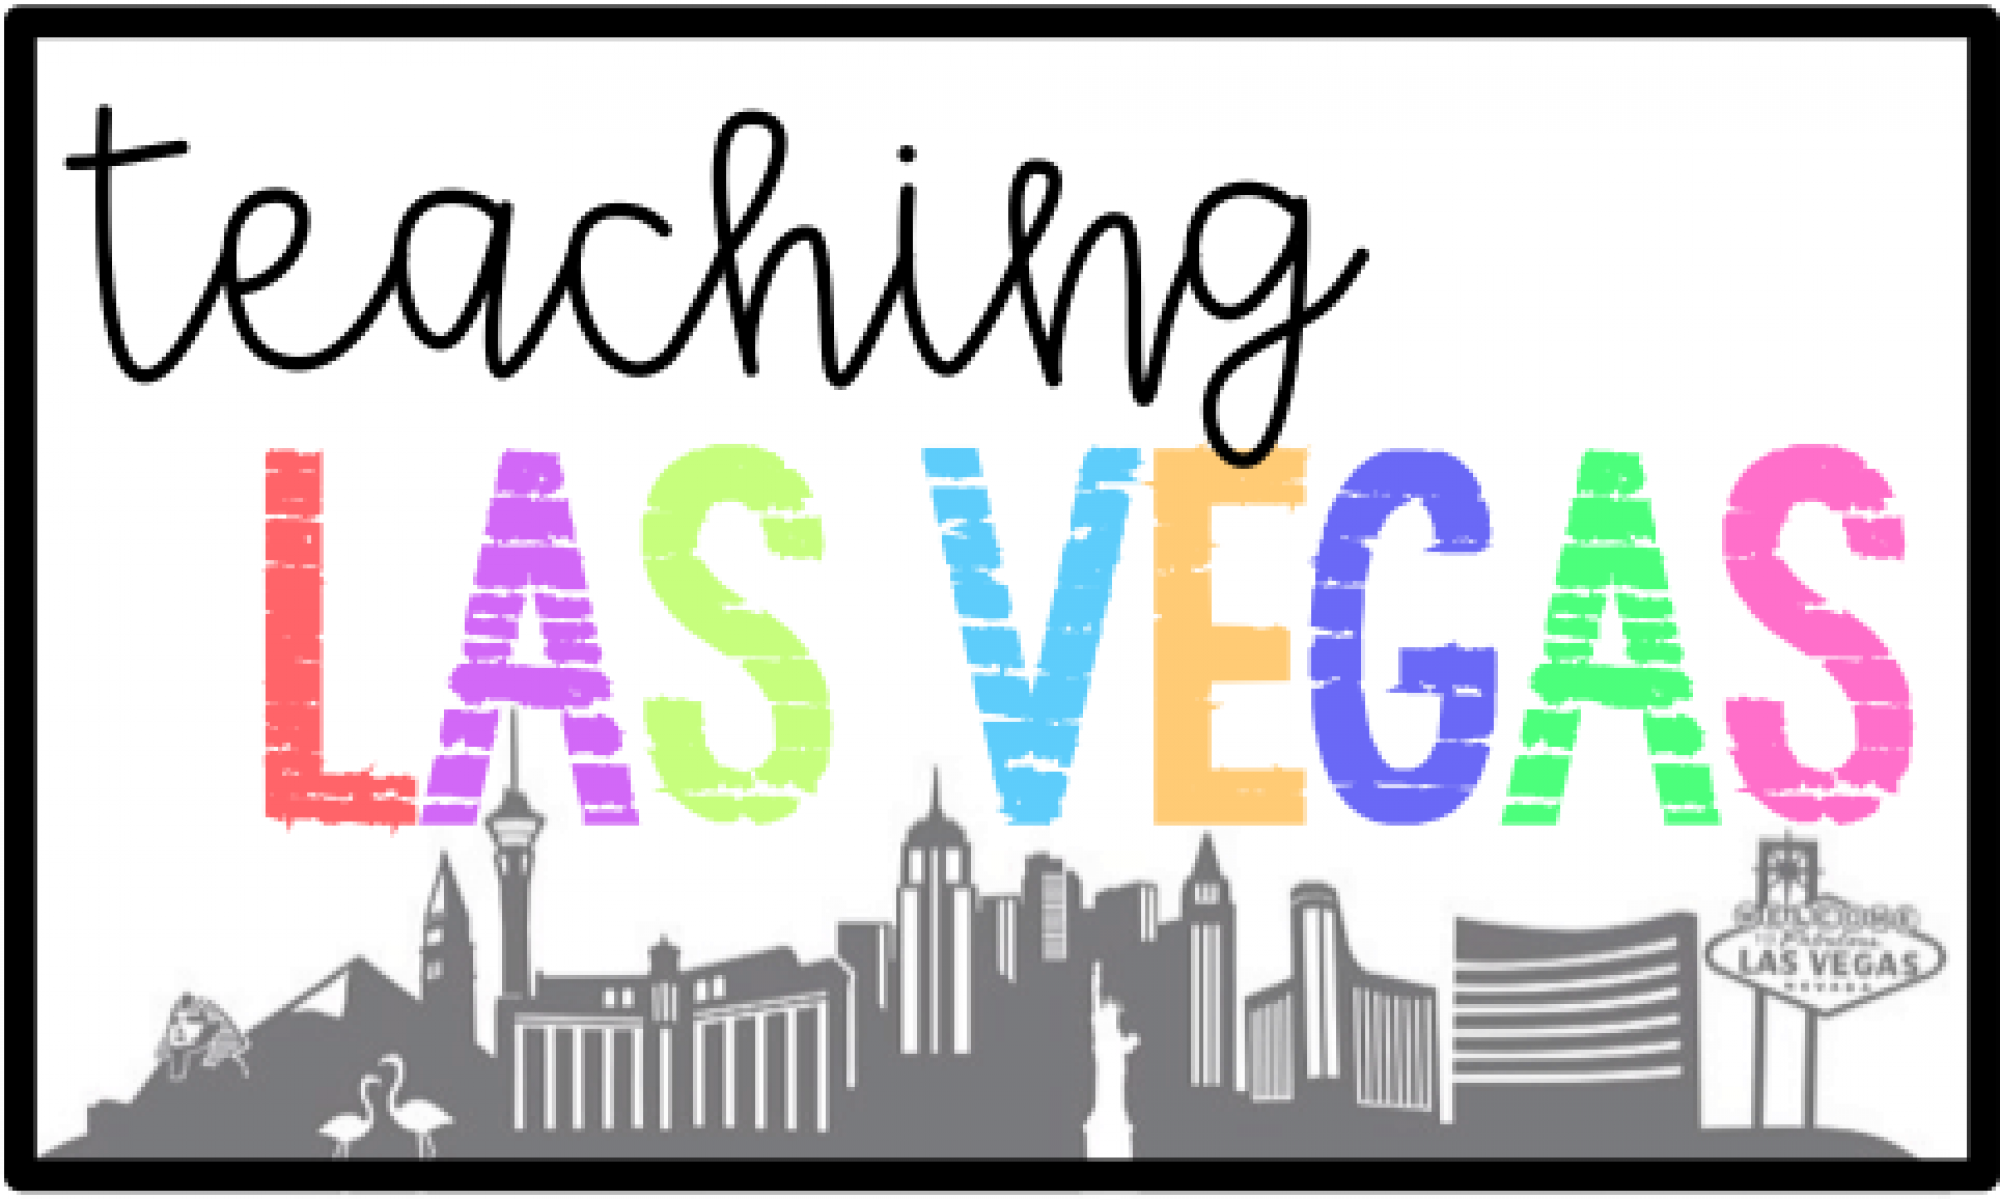 Teaching Las Vegas